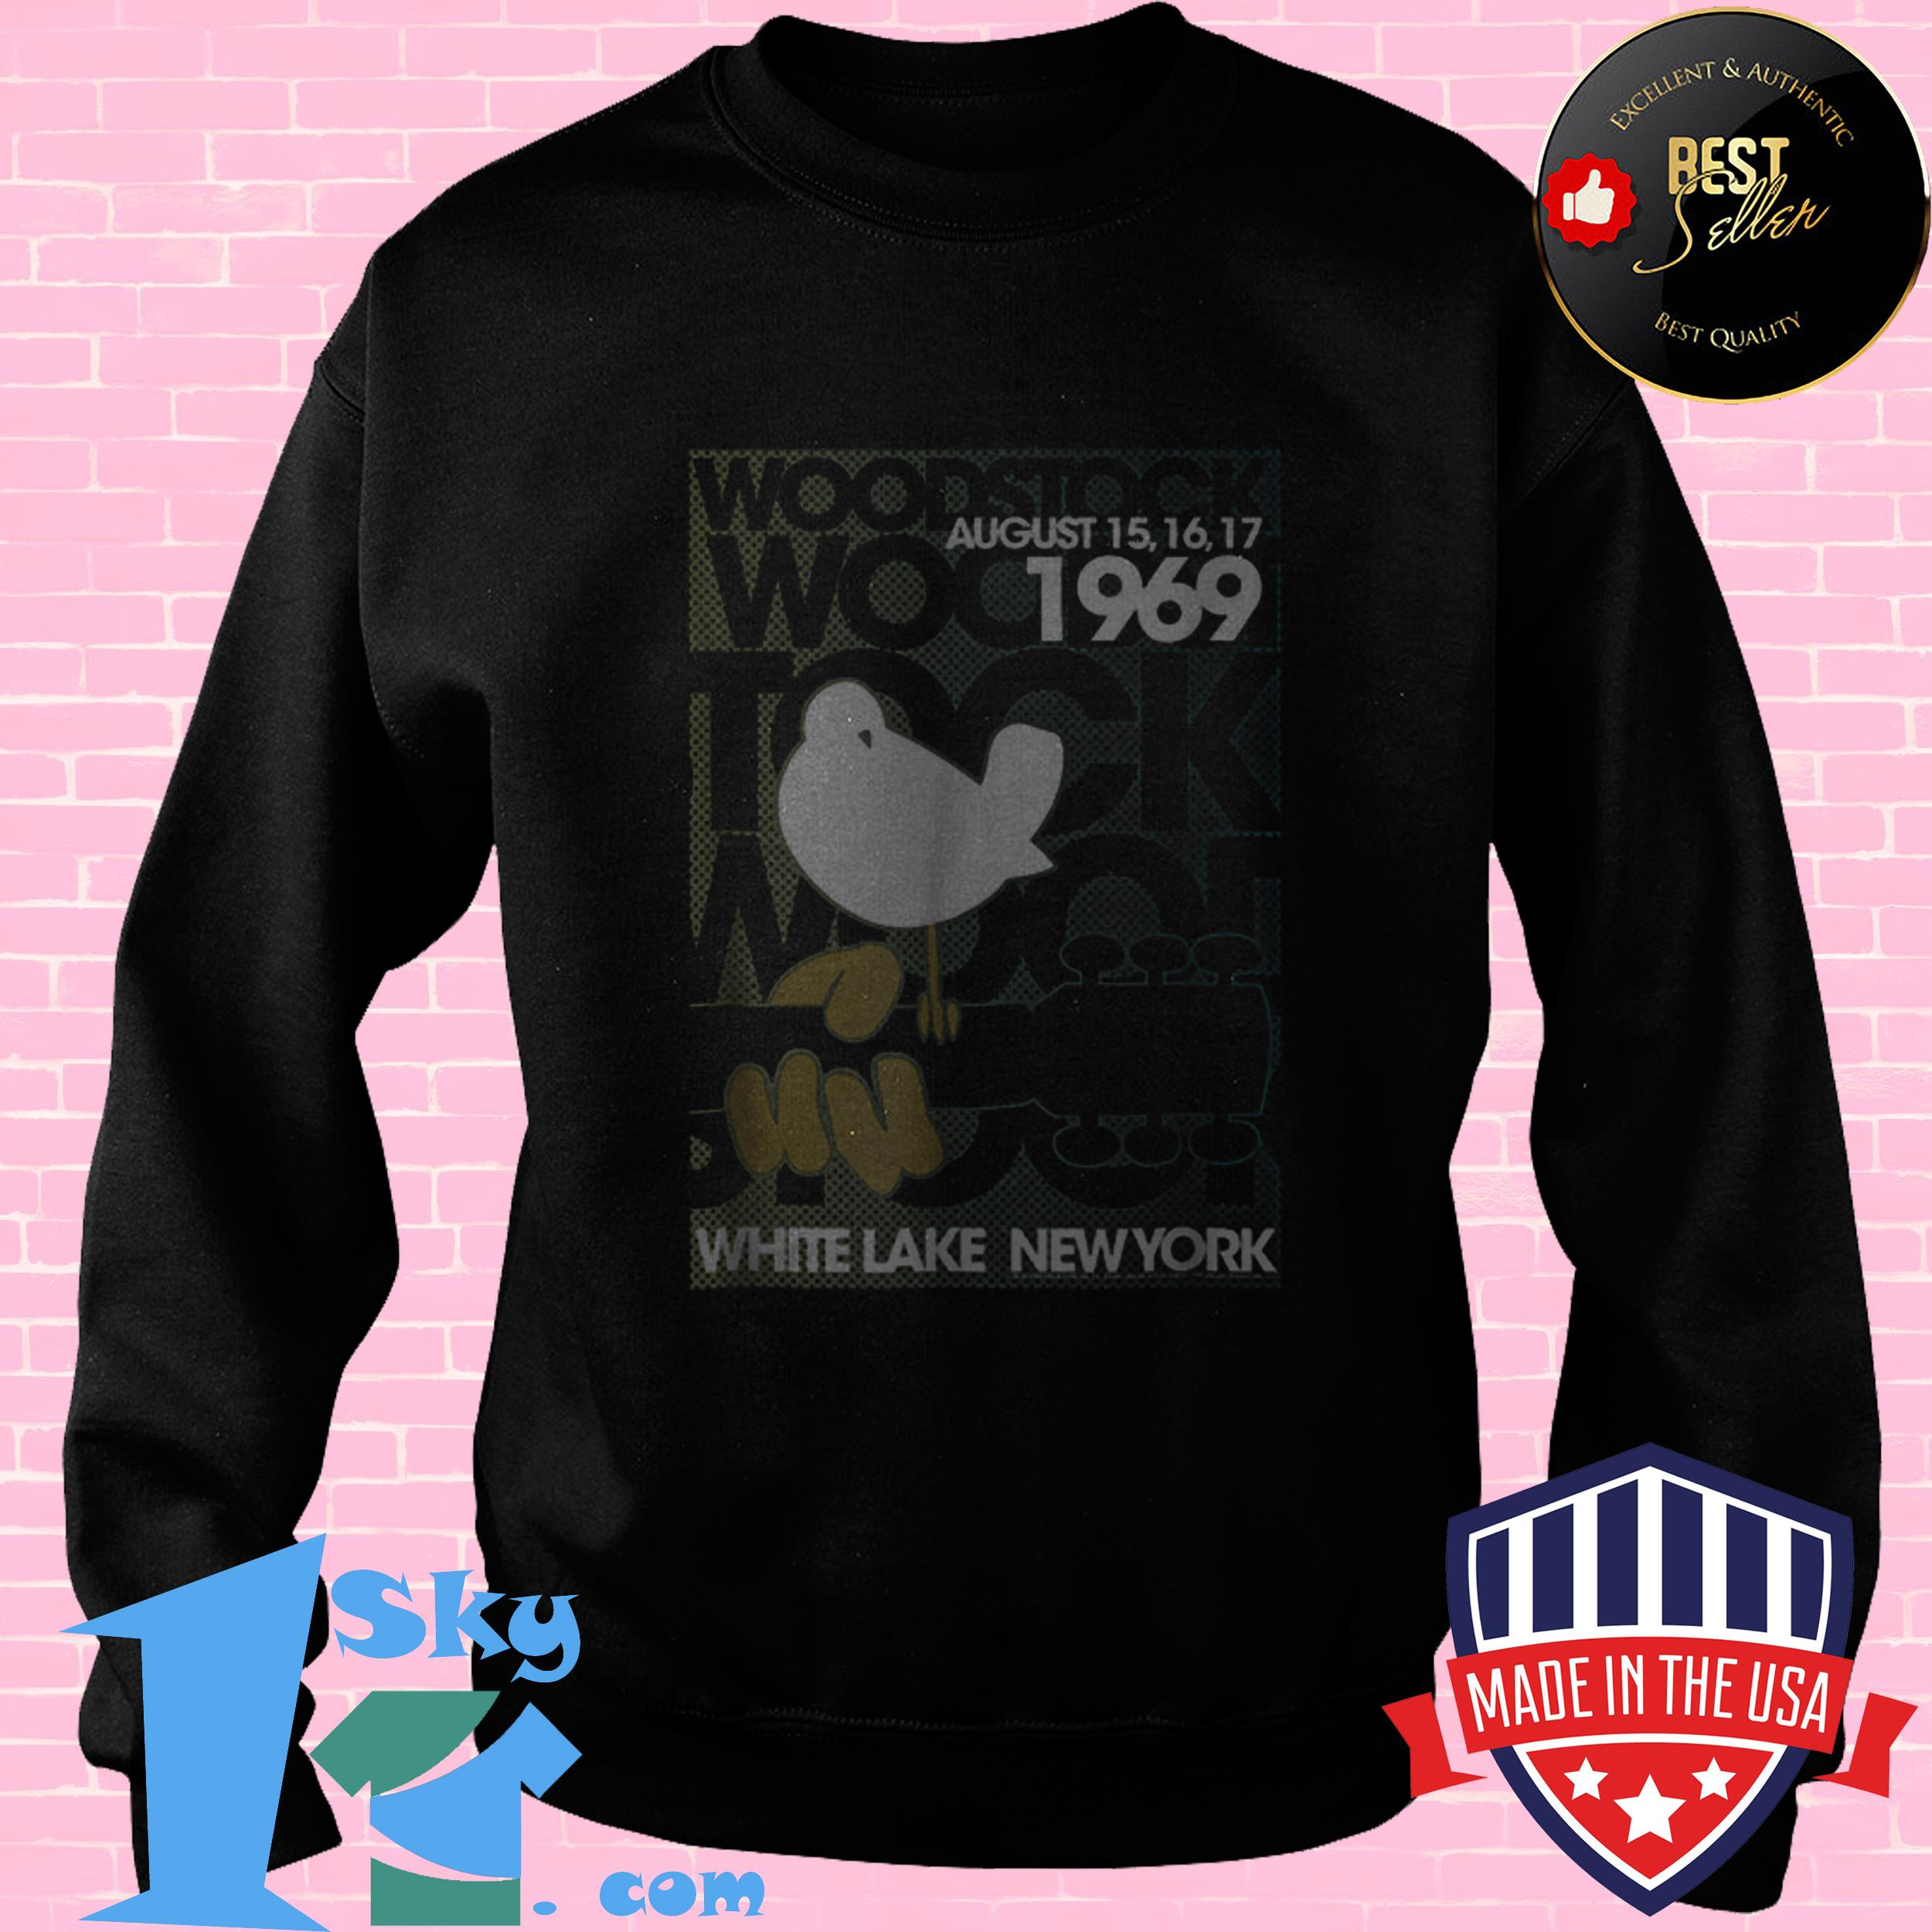 awesome woodstock august 1969 white lake new york sweatshirt - Awesome Woodstock August 1969 White Lake New York shirt